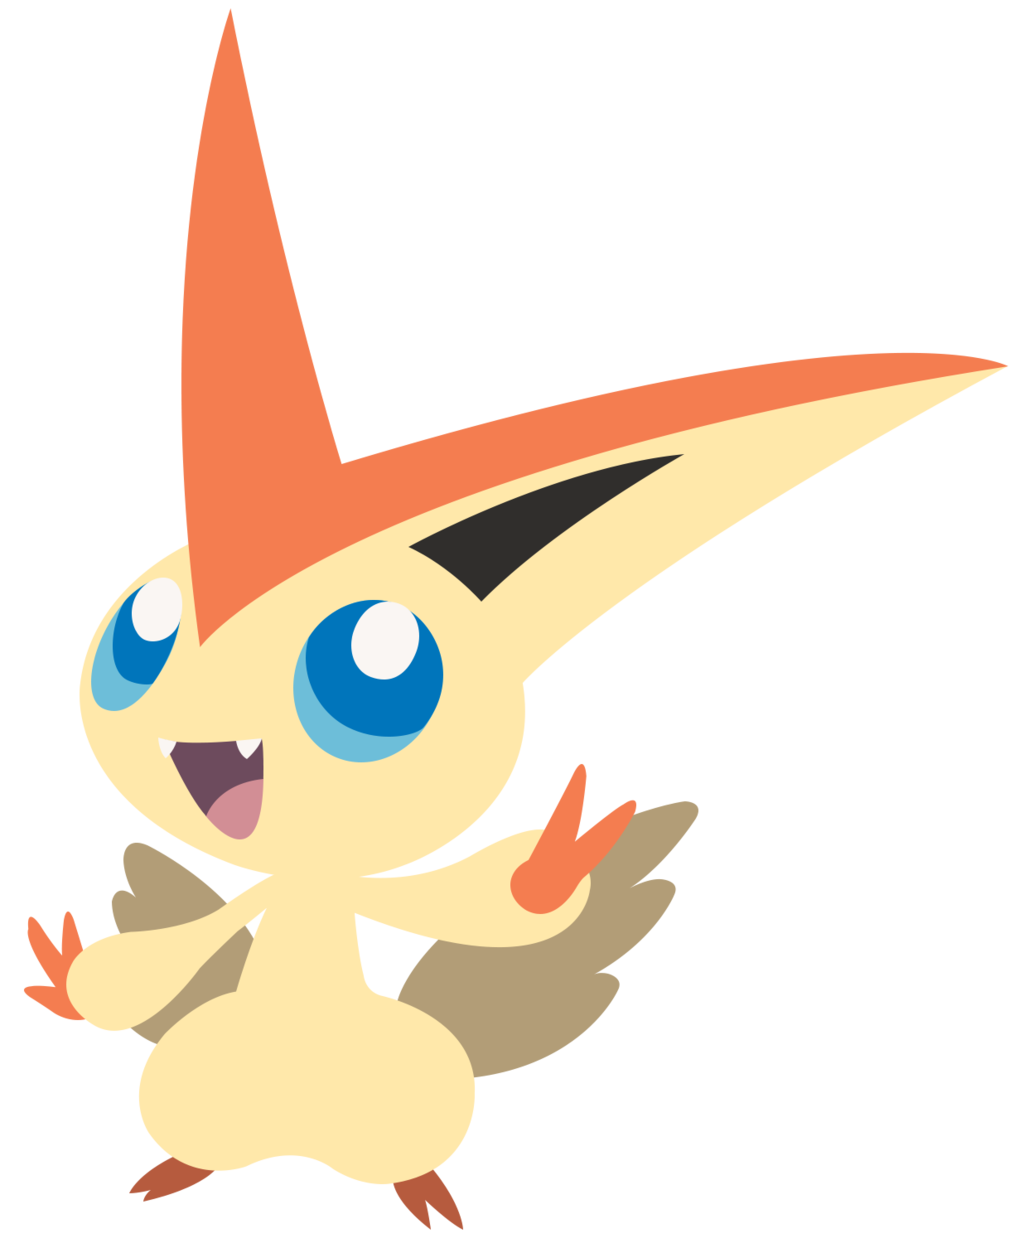 Victini by Squiggle.